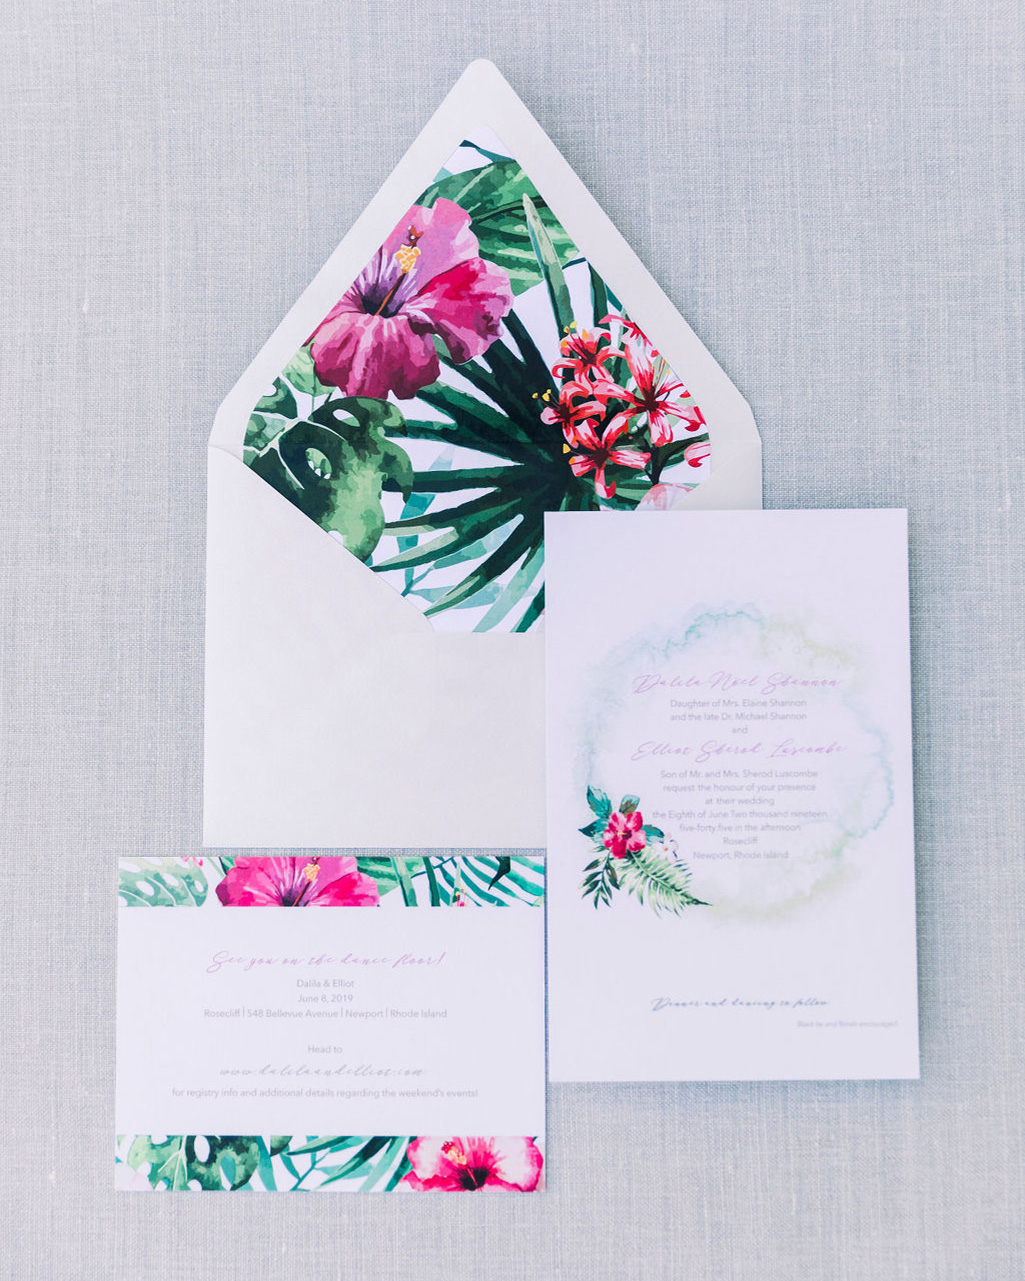 dalila elliot tropical and white wedding invitations